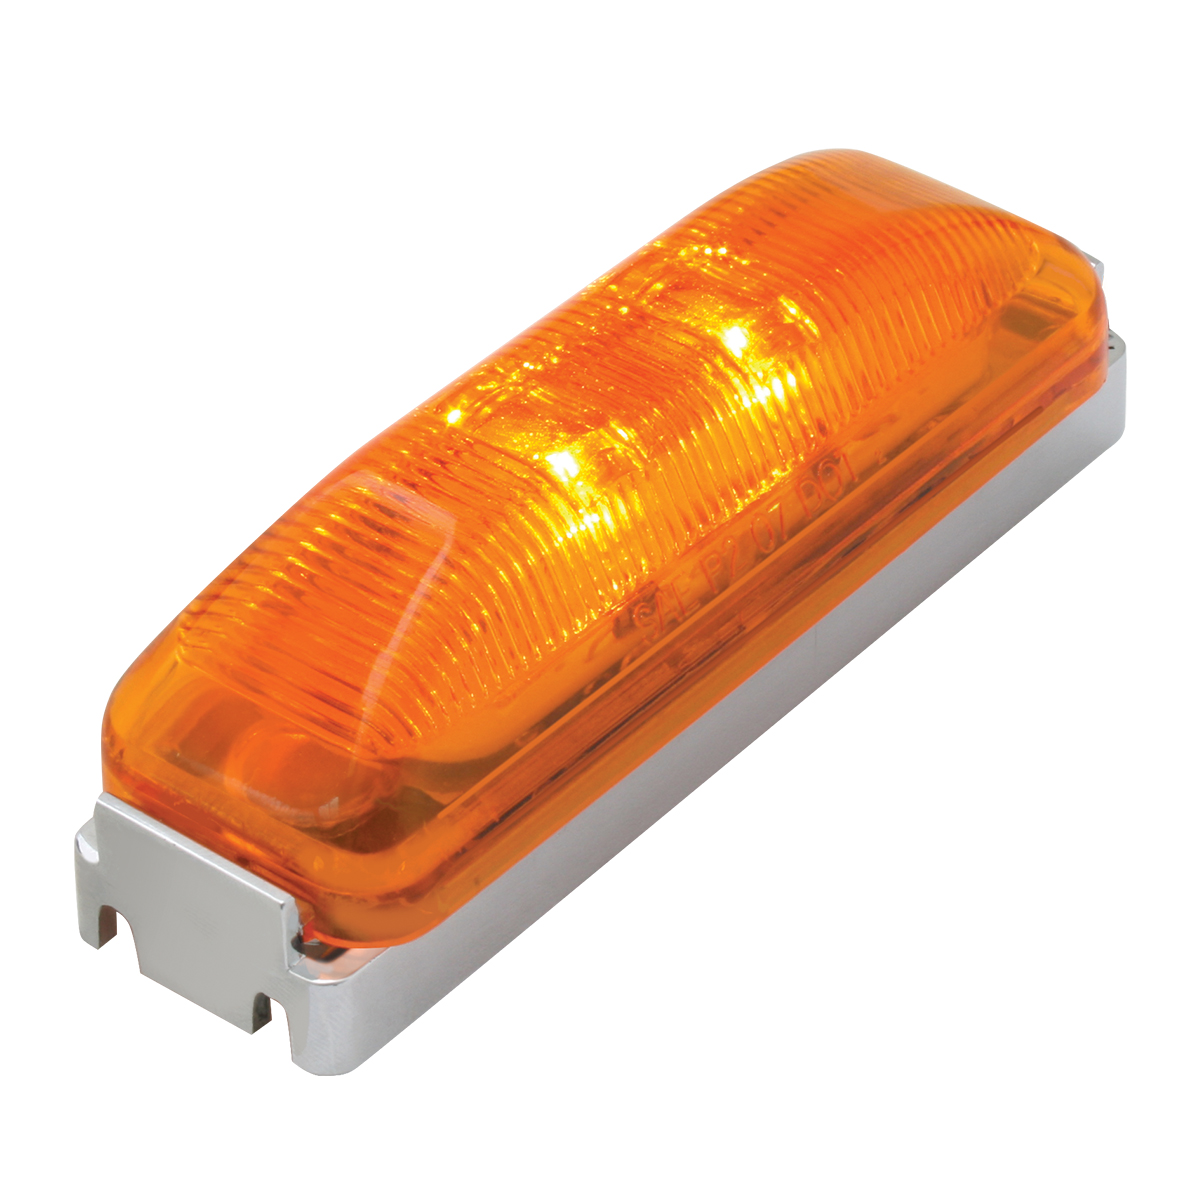 76390 Medium Rectangular Fleet LED Marker Light w/ Chrome Bracket